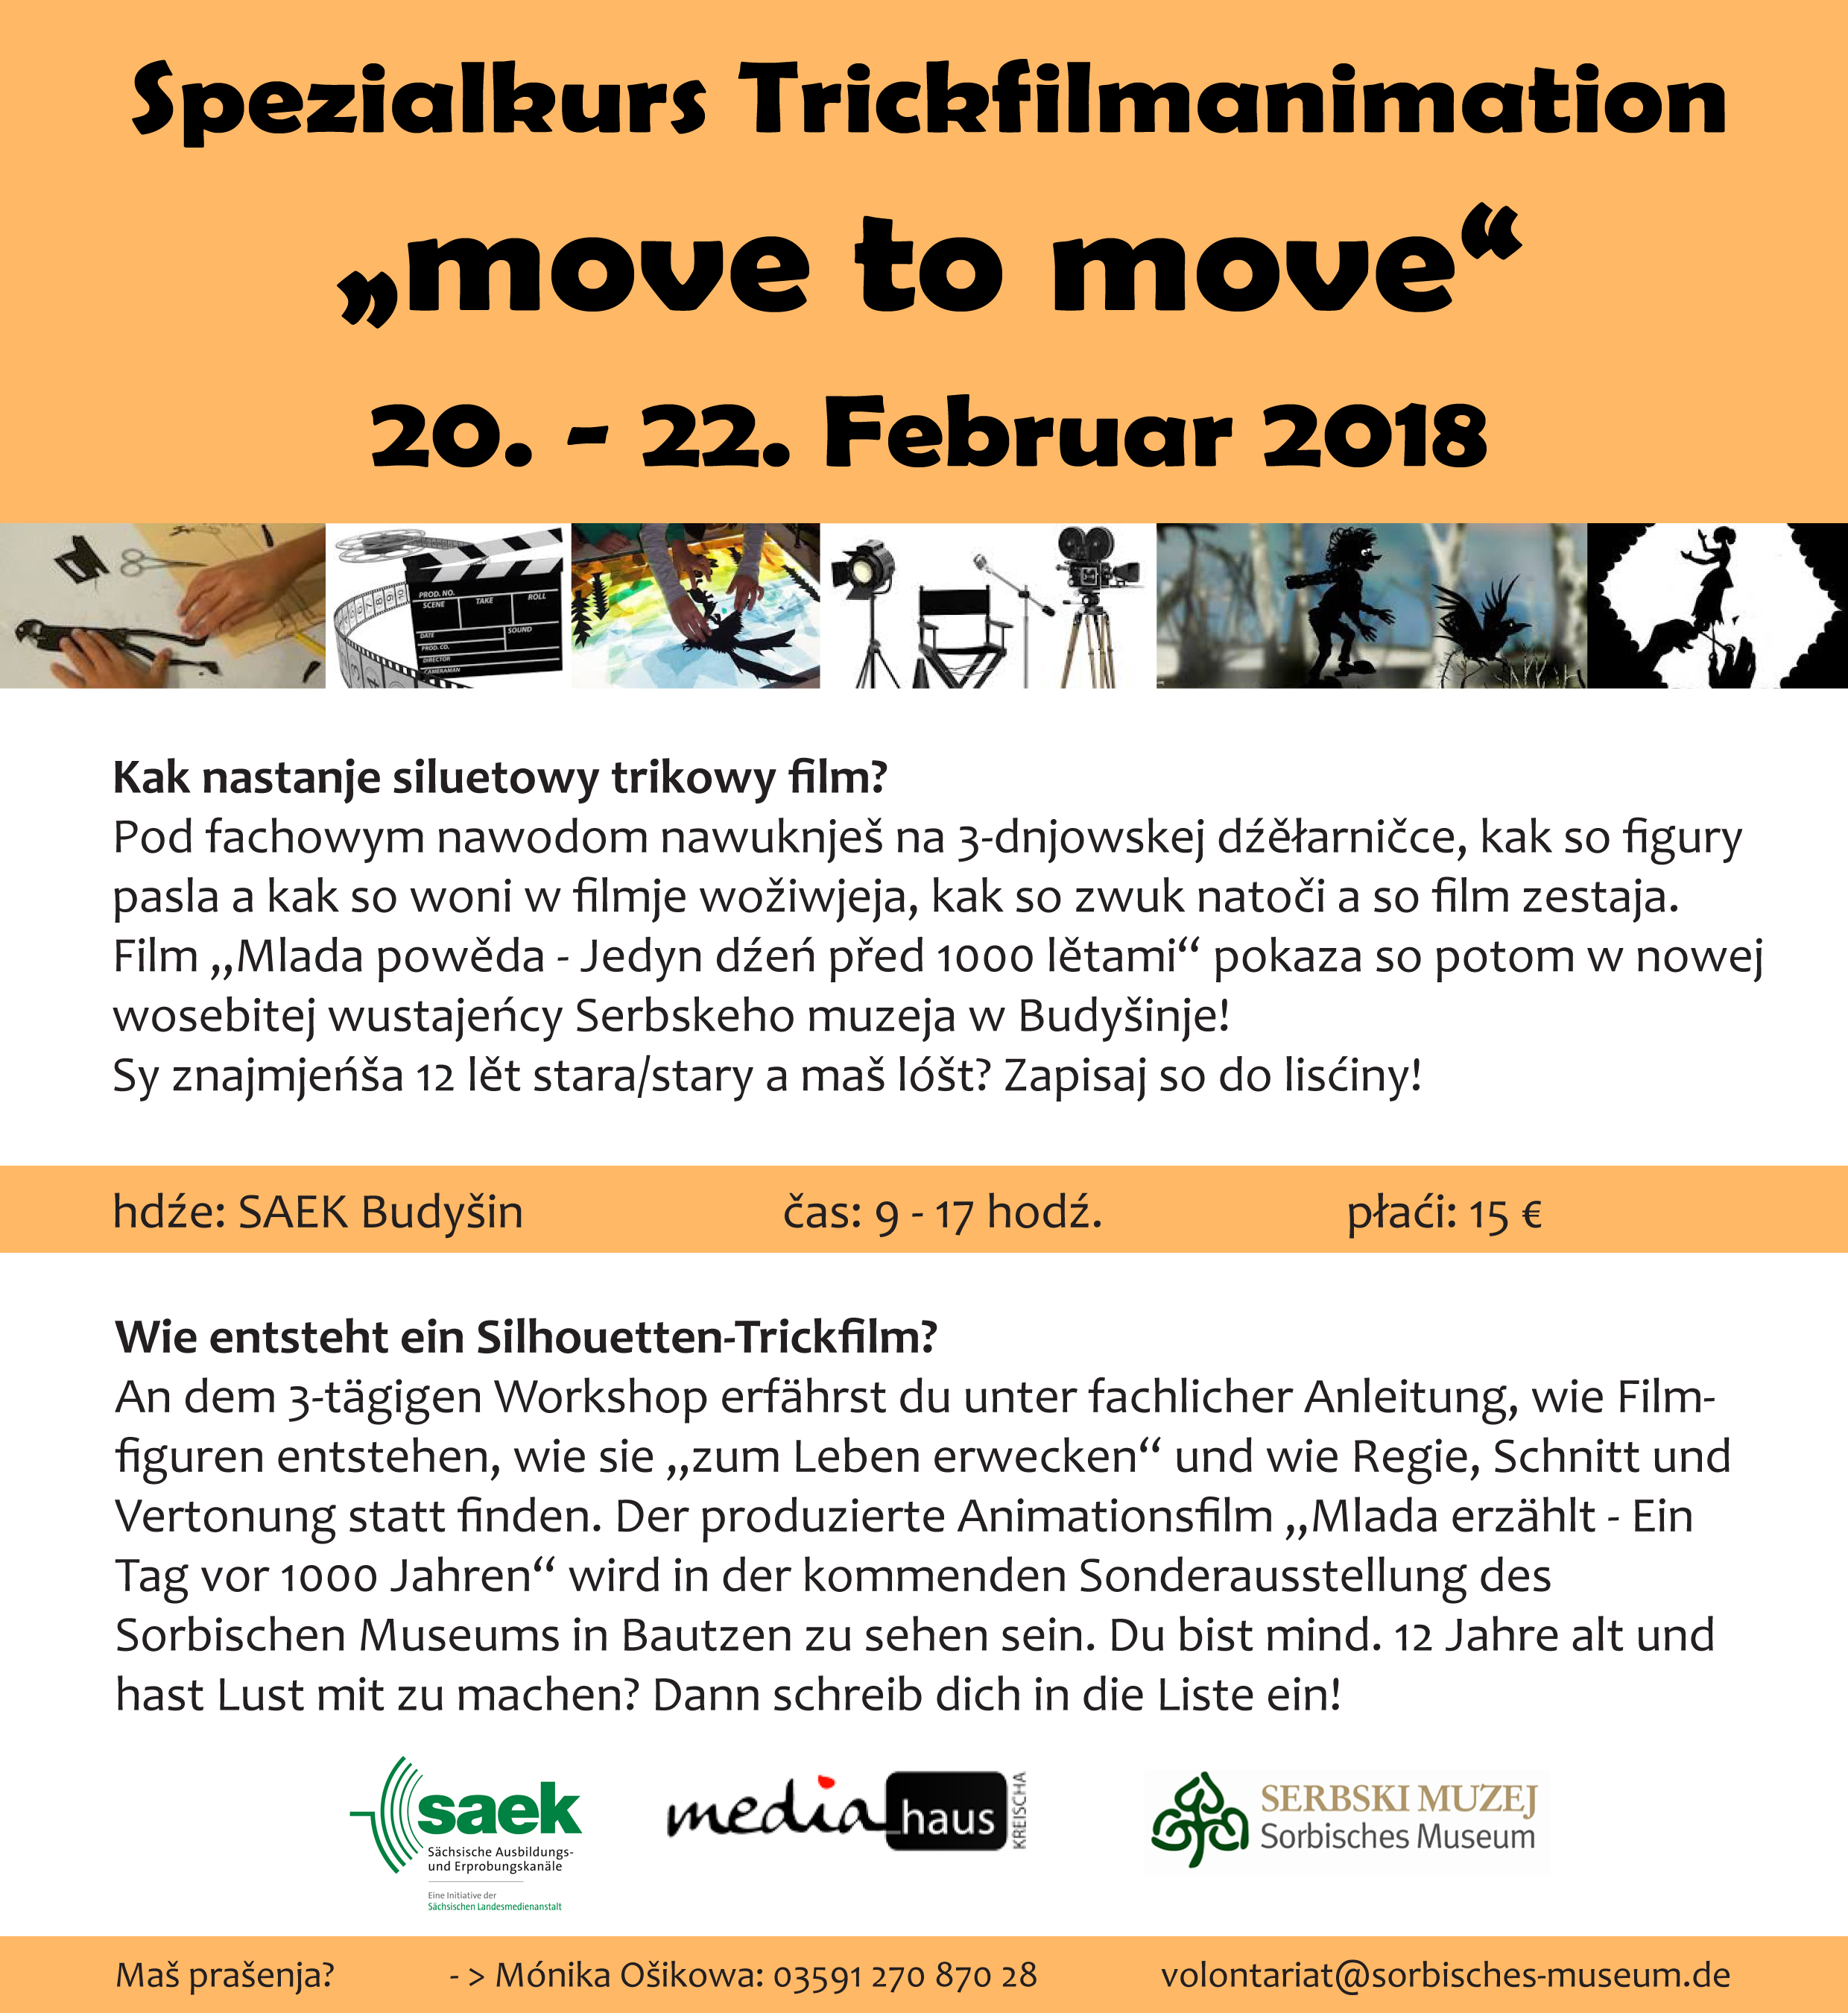 "WORKSHOP ""move to move"" – Noch Plätze frei!"